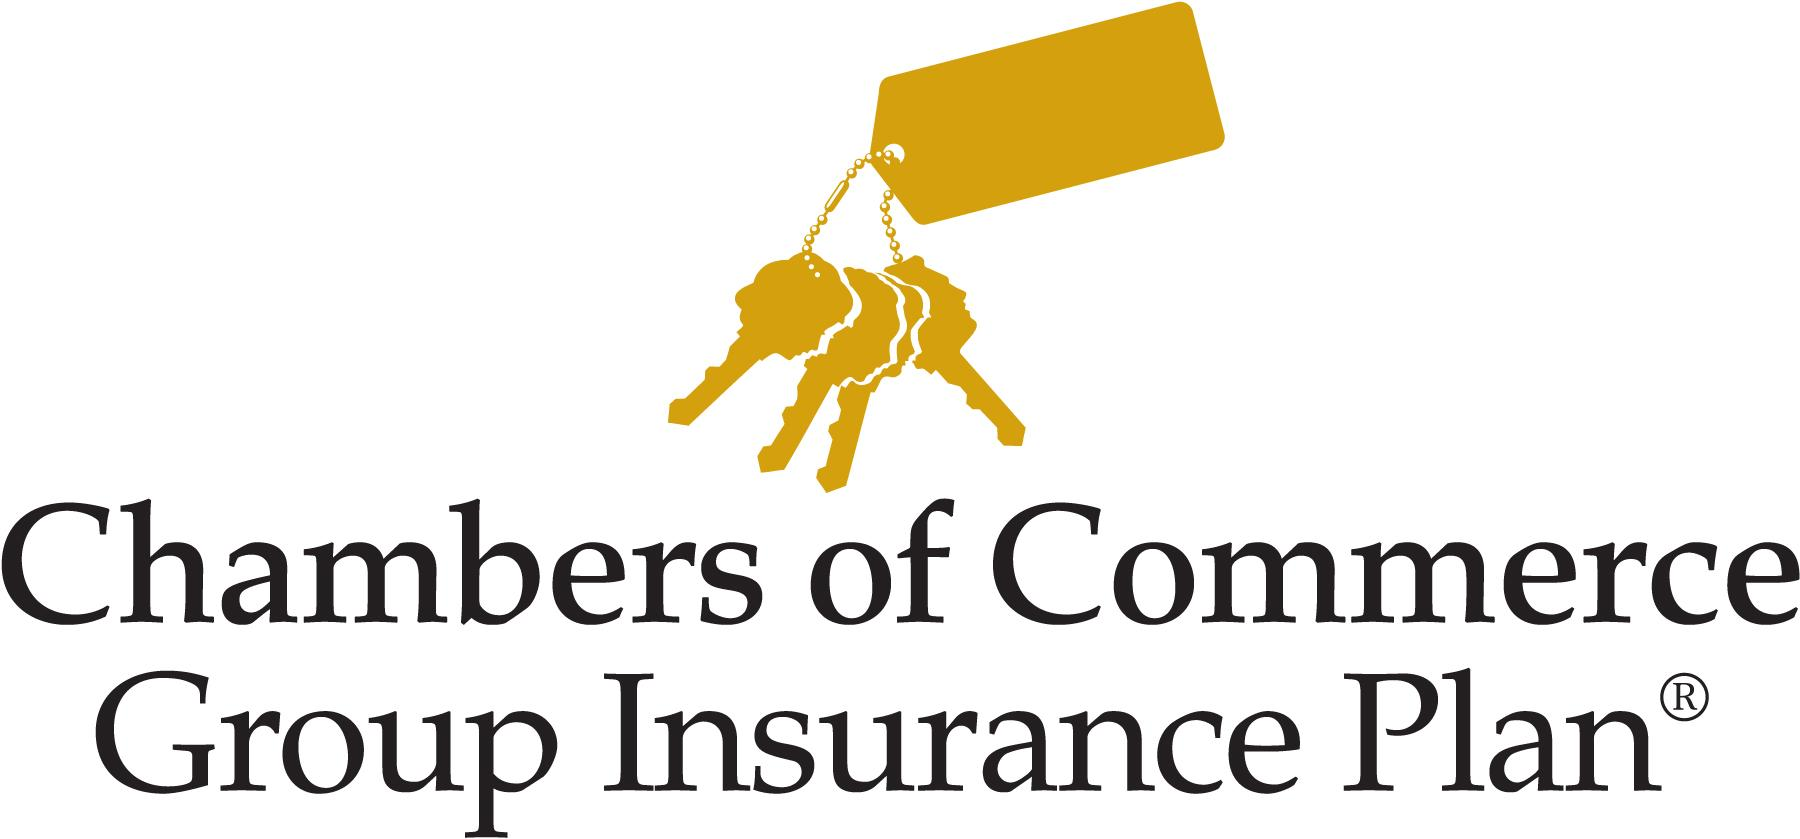 Chambers of Commerce Insurance